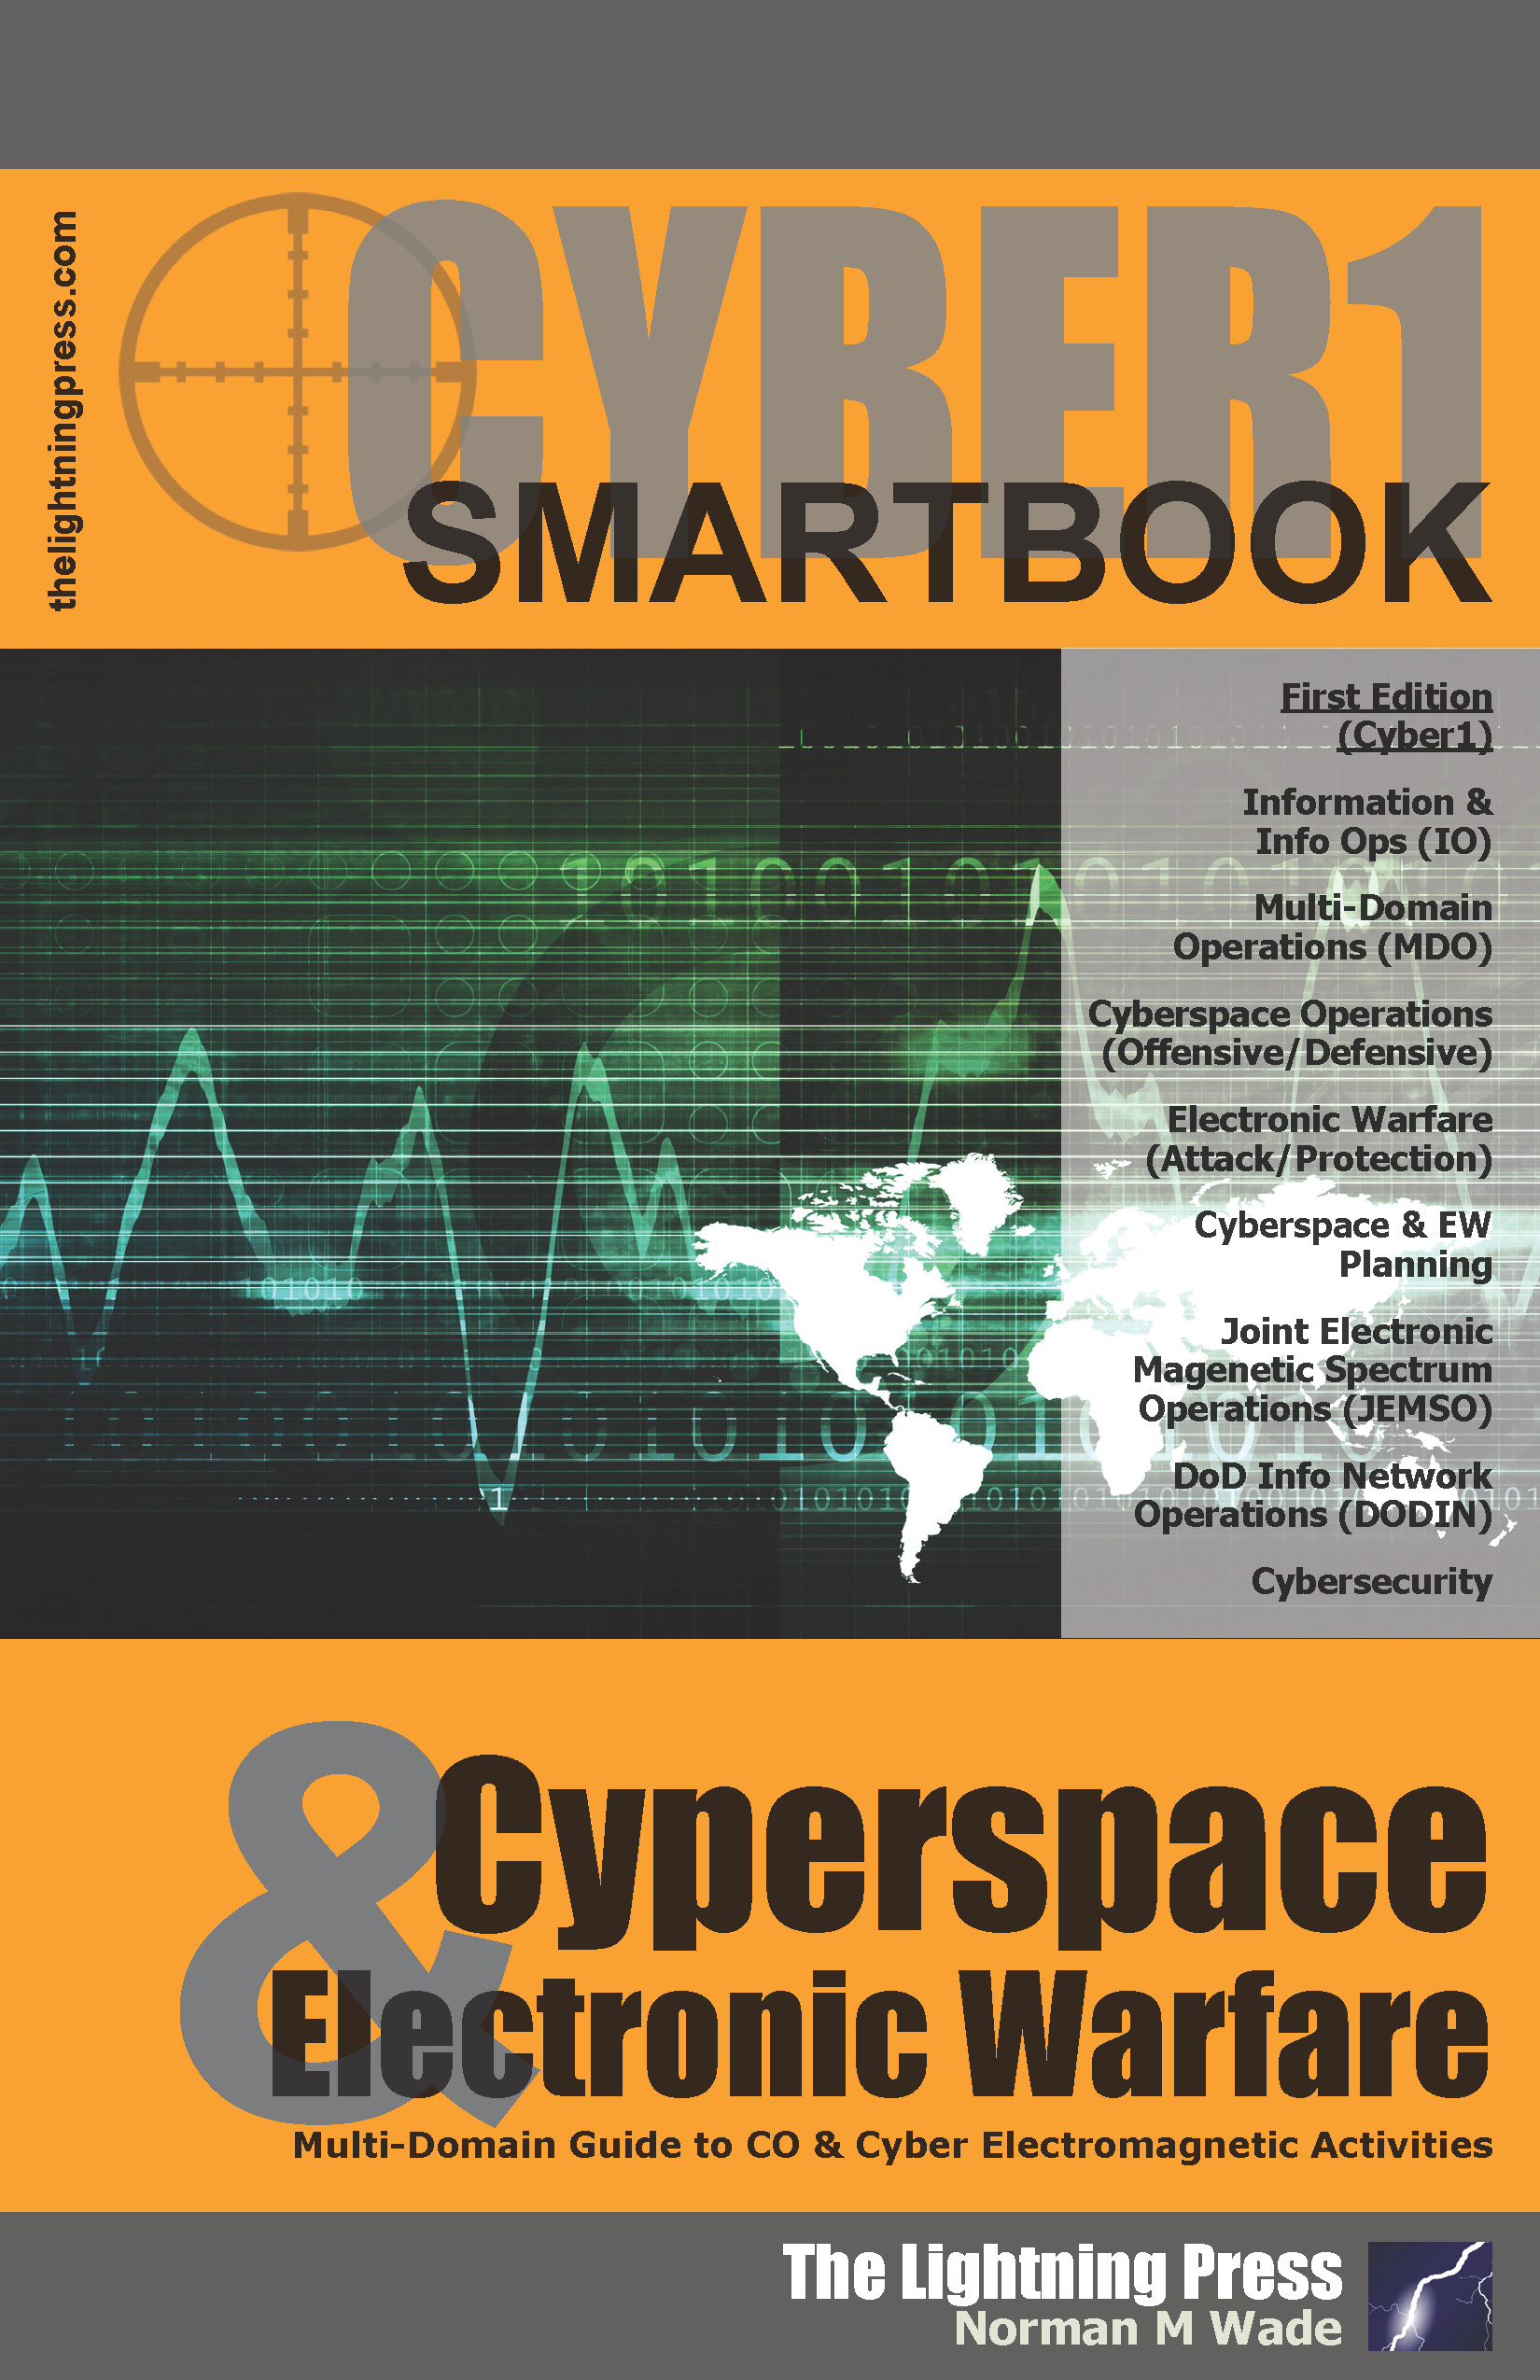 CYBER1: The Cyberspace & Electronic Warfare SMARTbook